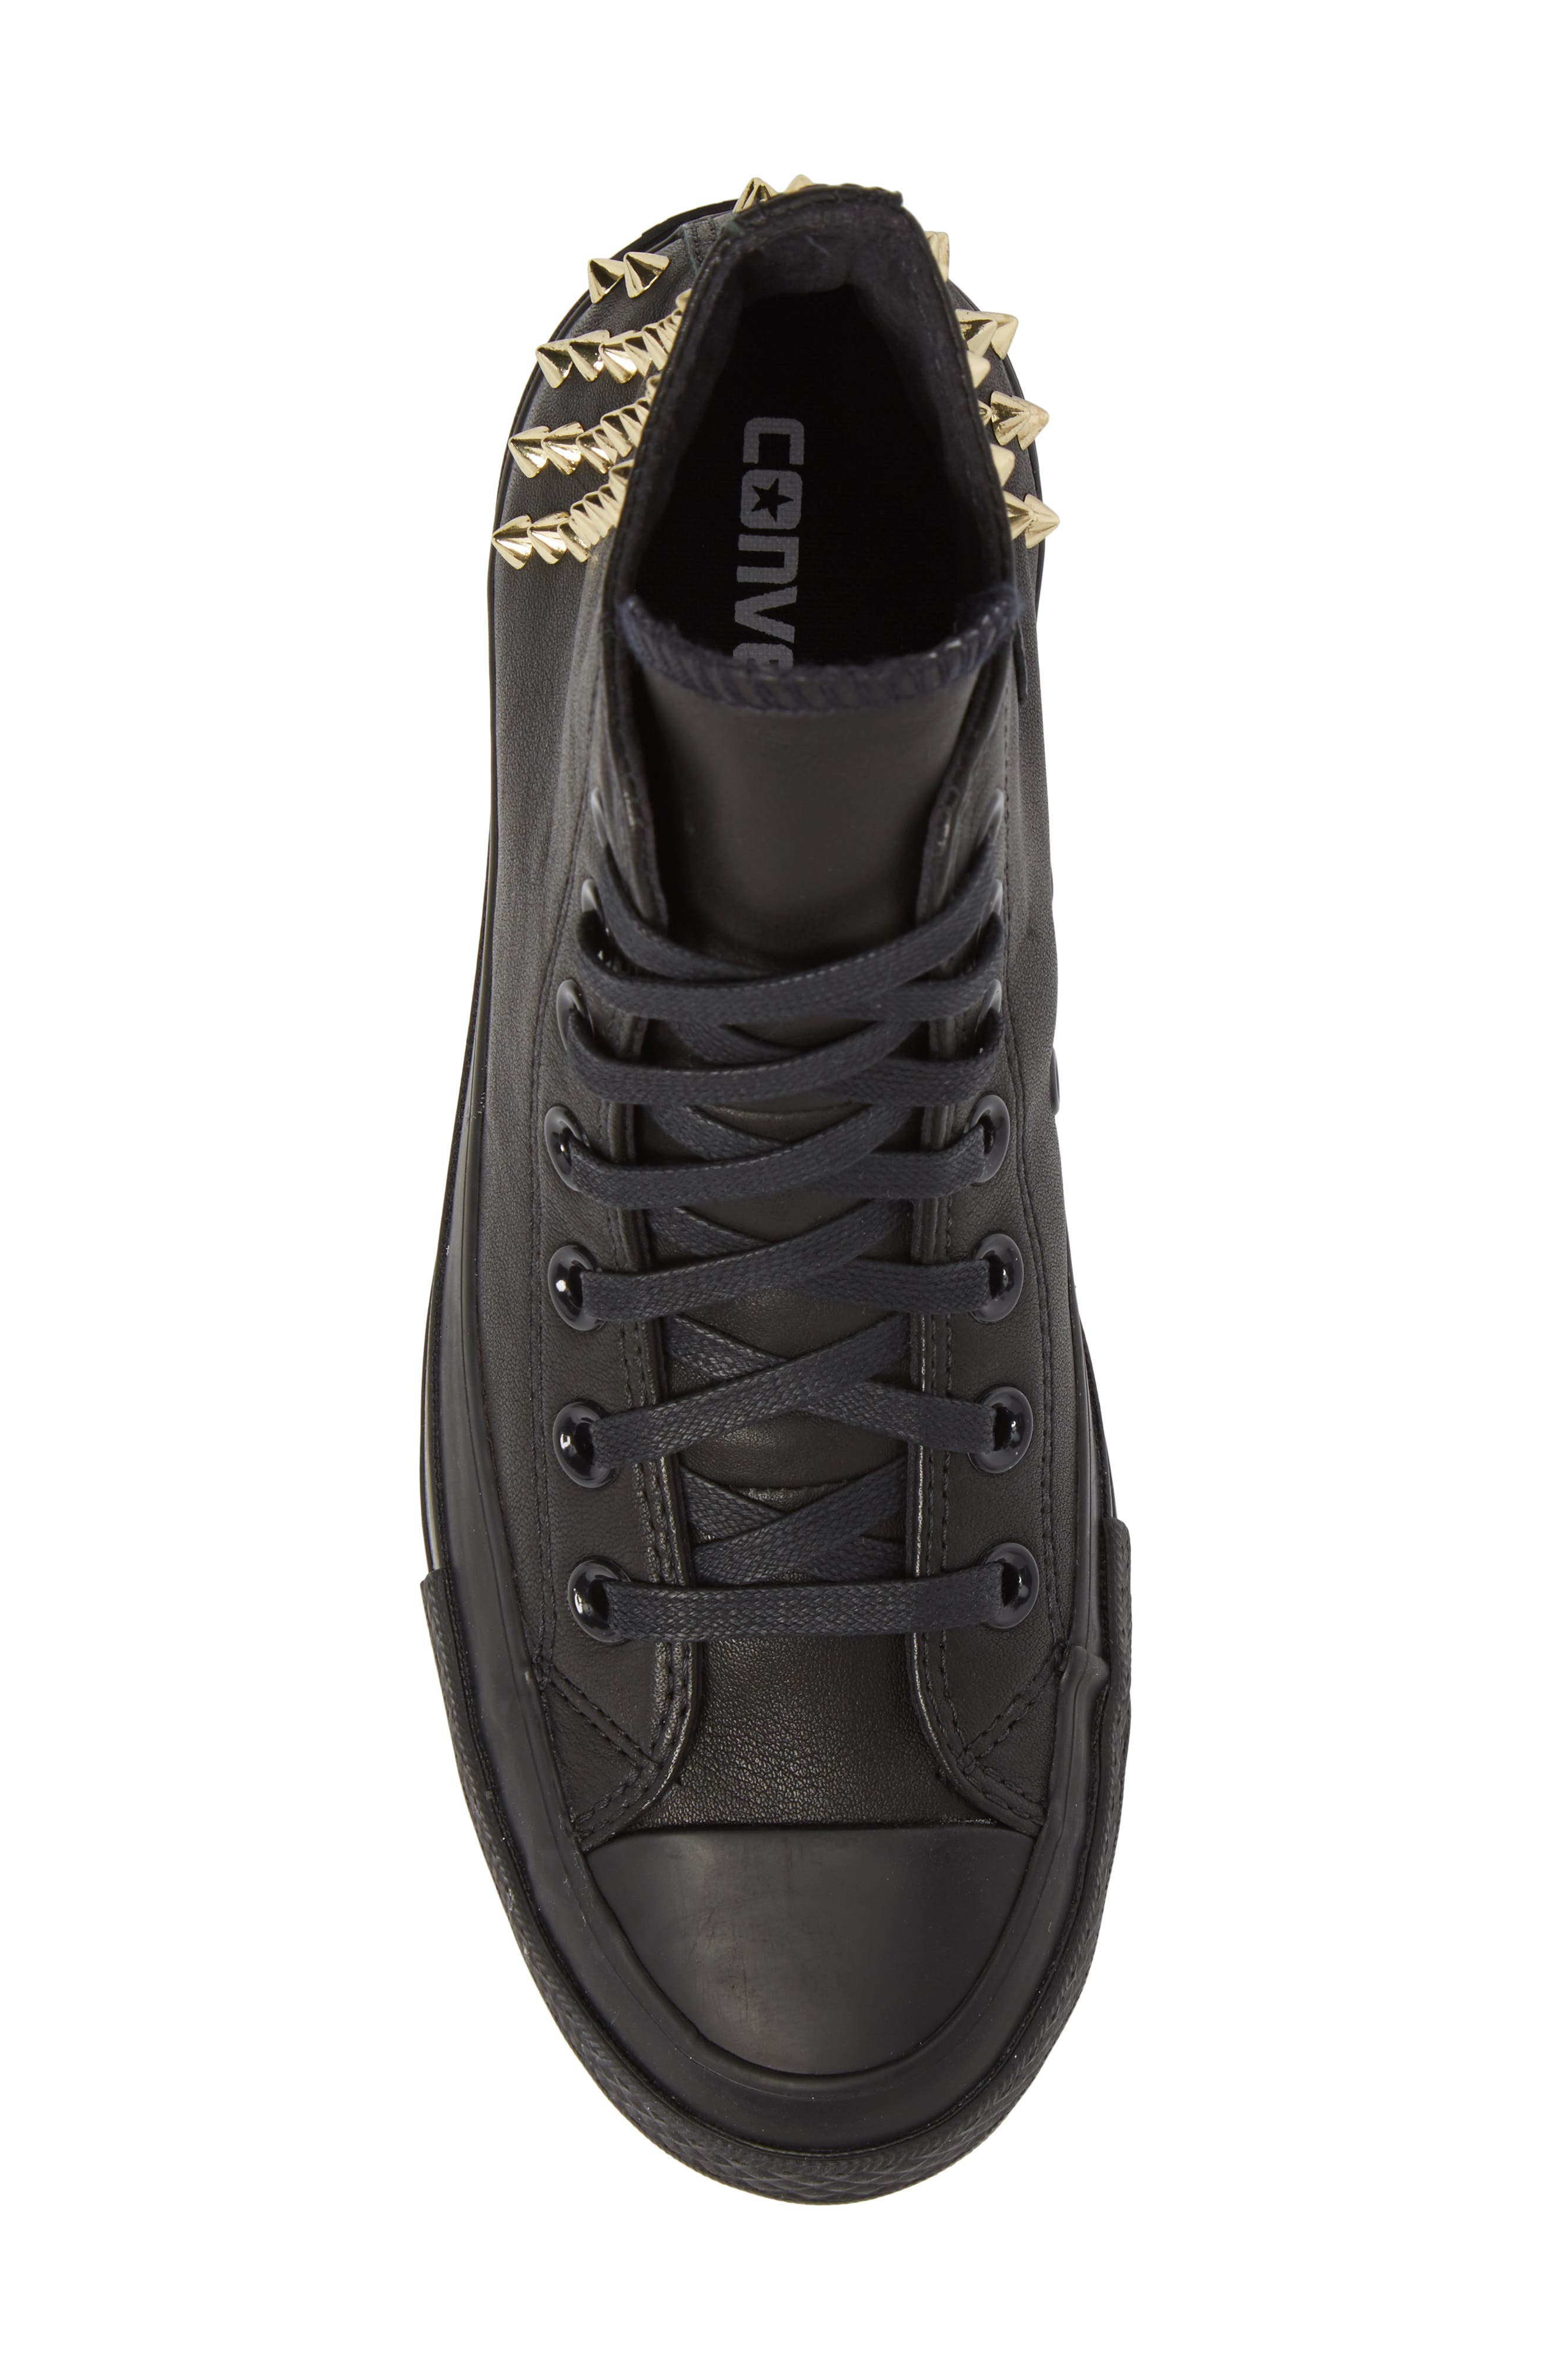 Chuck Taylor<sup>®</sup> All Star<sup>®</sup> Lift Ripple Studded High Top Sneaker,                             Alternate thumbnail 5, color,                             001